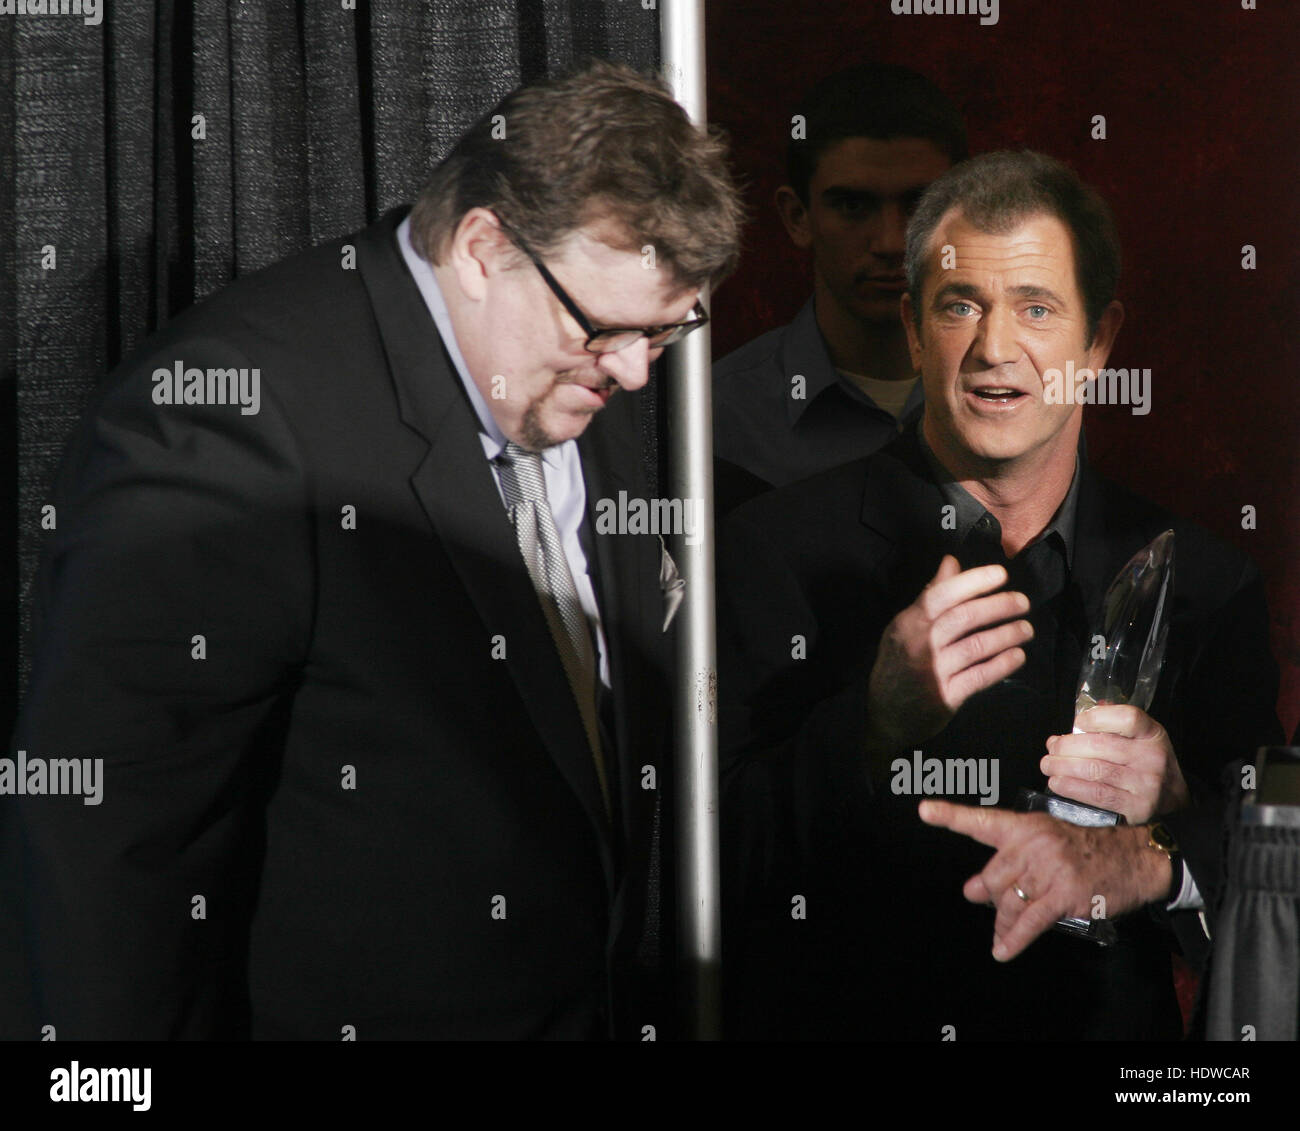 Michael Moore, left, and Mel Gibson meet backstage at the People's Choice Awards in Pasadena, California on - Stock Image